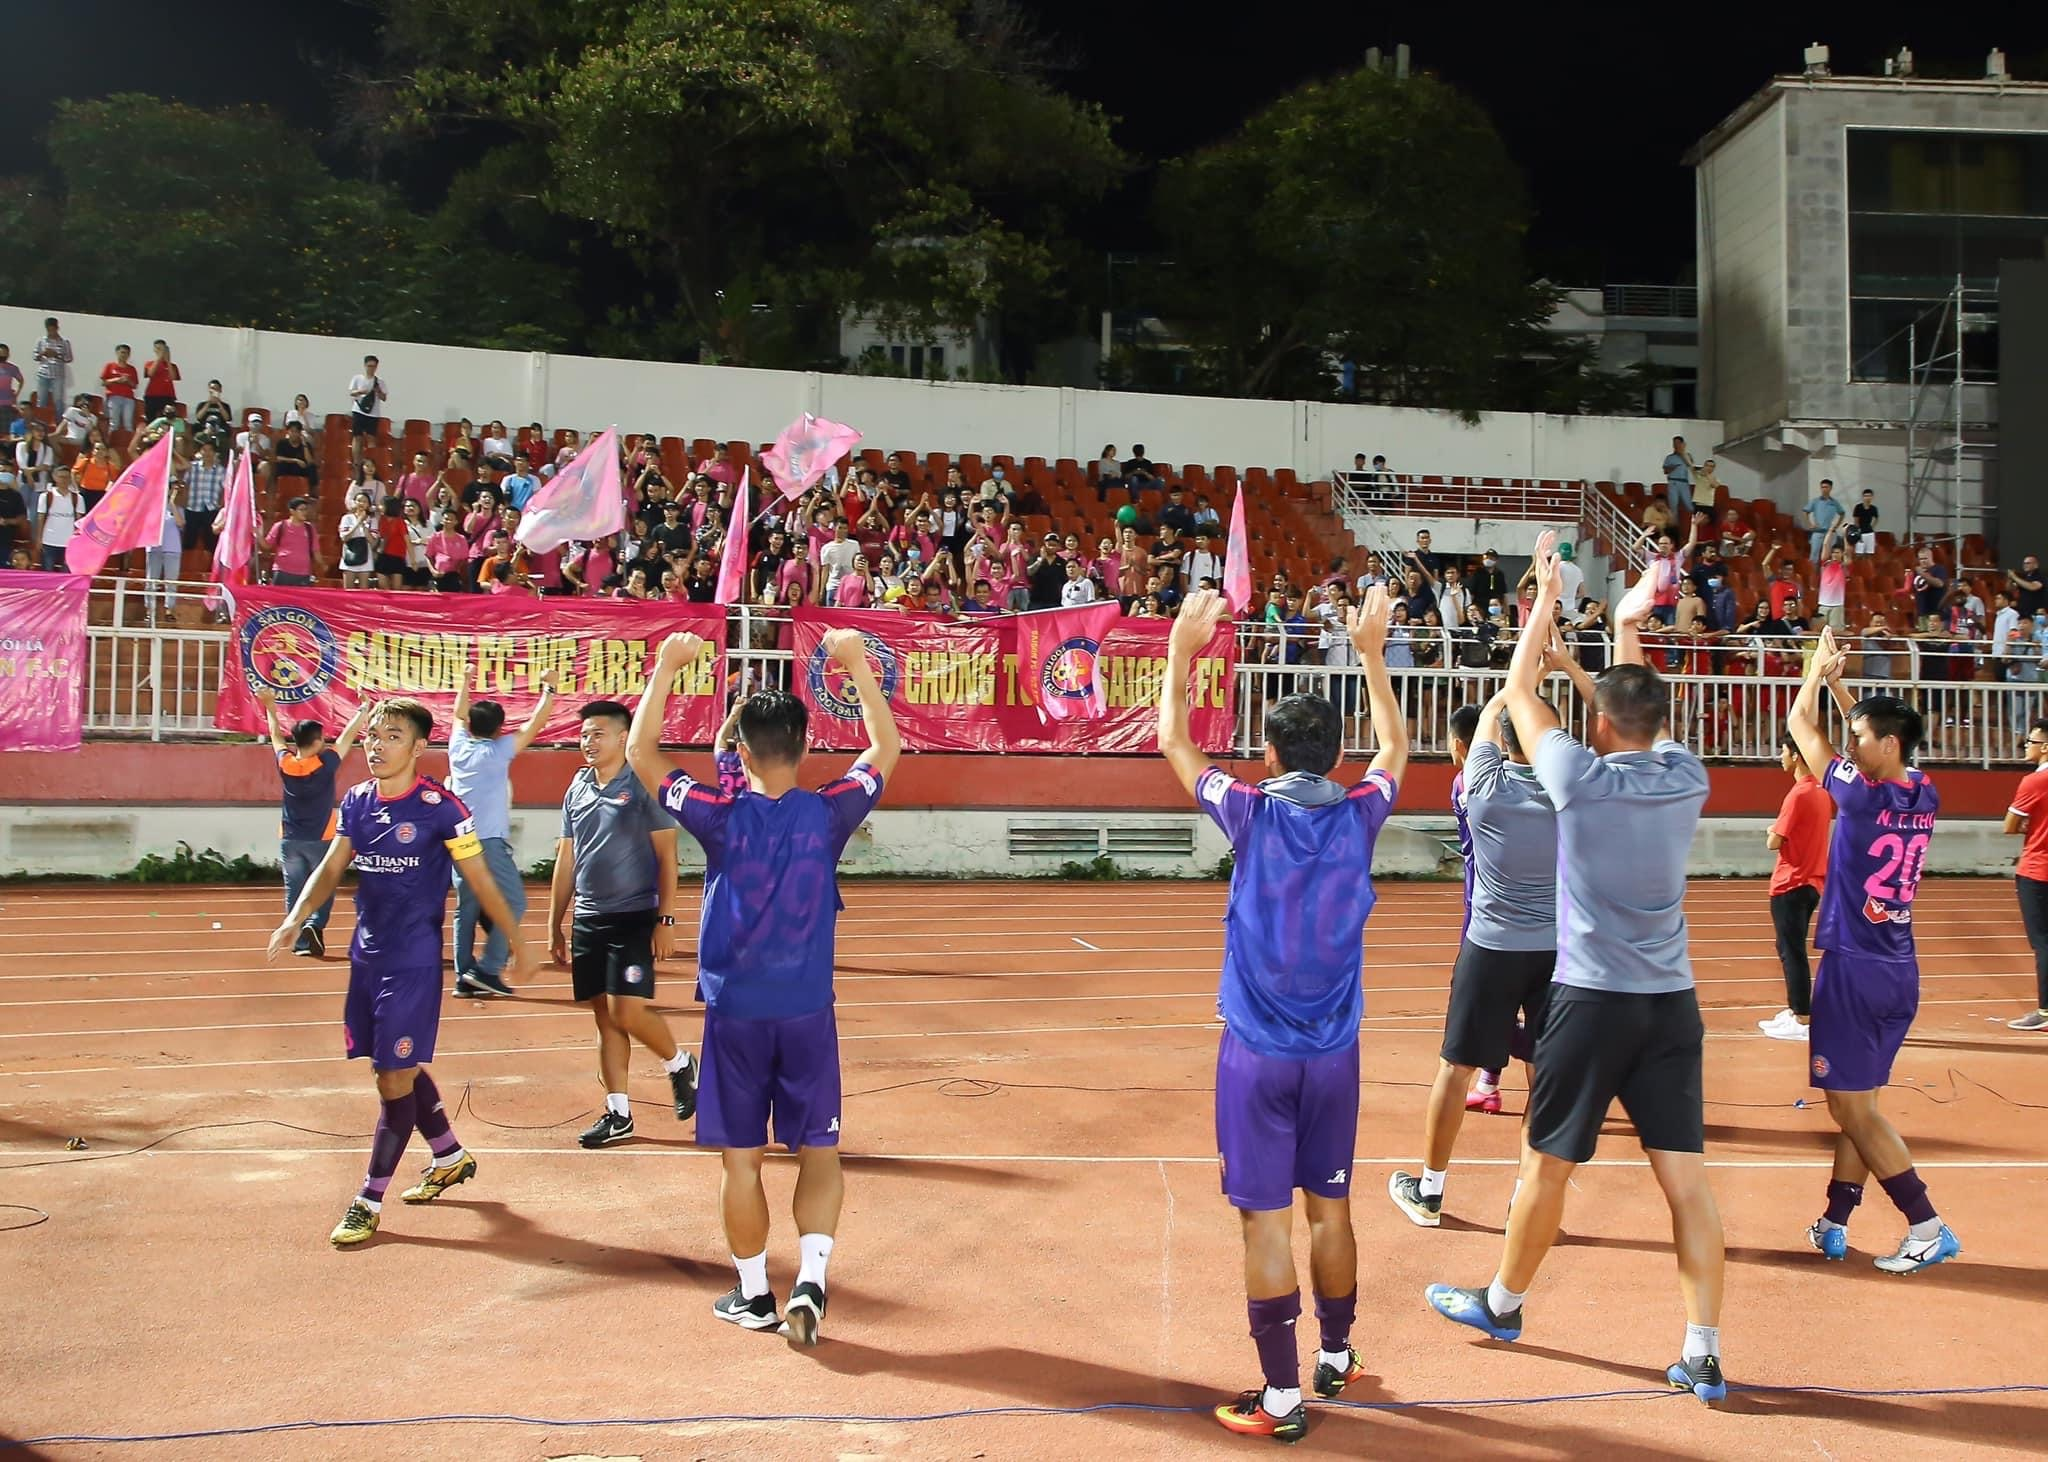 Players of Saigon FC wave at supporters after their game against Ho Chi Minh City FC at V.League 1's fourth round in Ho Chi Minh City, June 12, 2020. Photo: Dang Hoang / Tuoi Tre Contributor